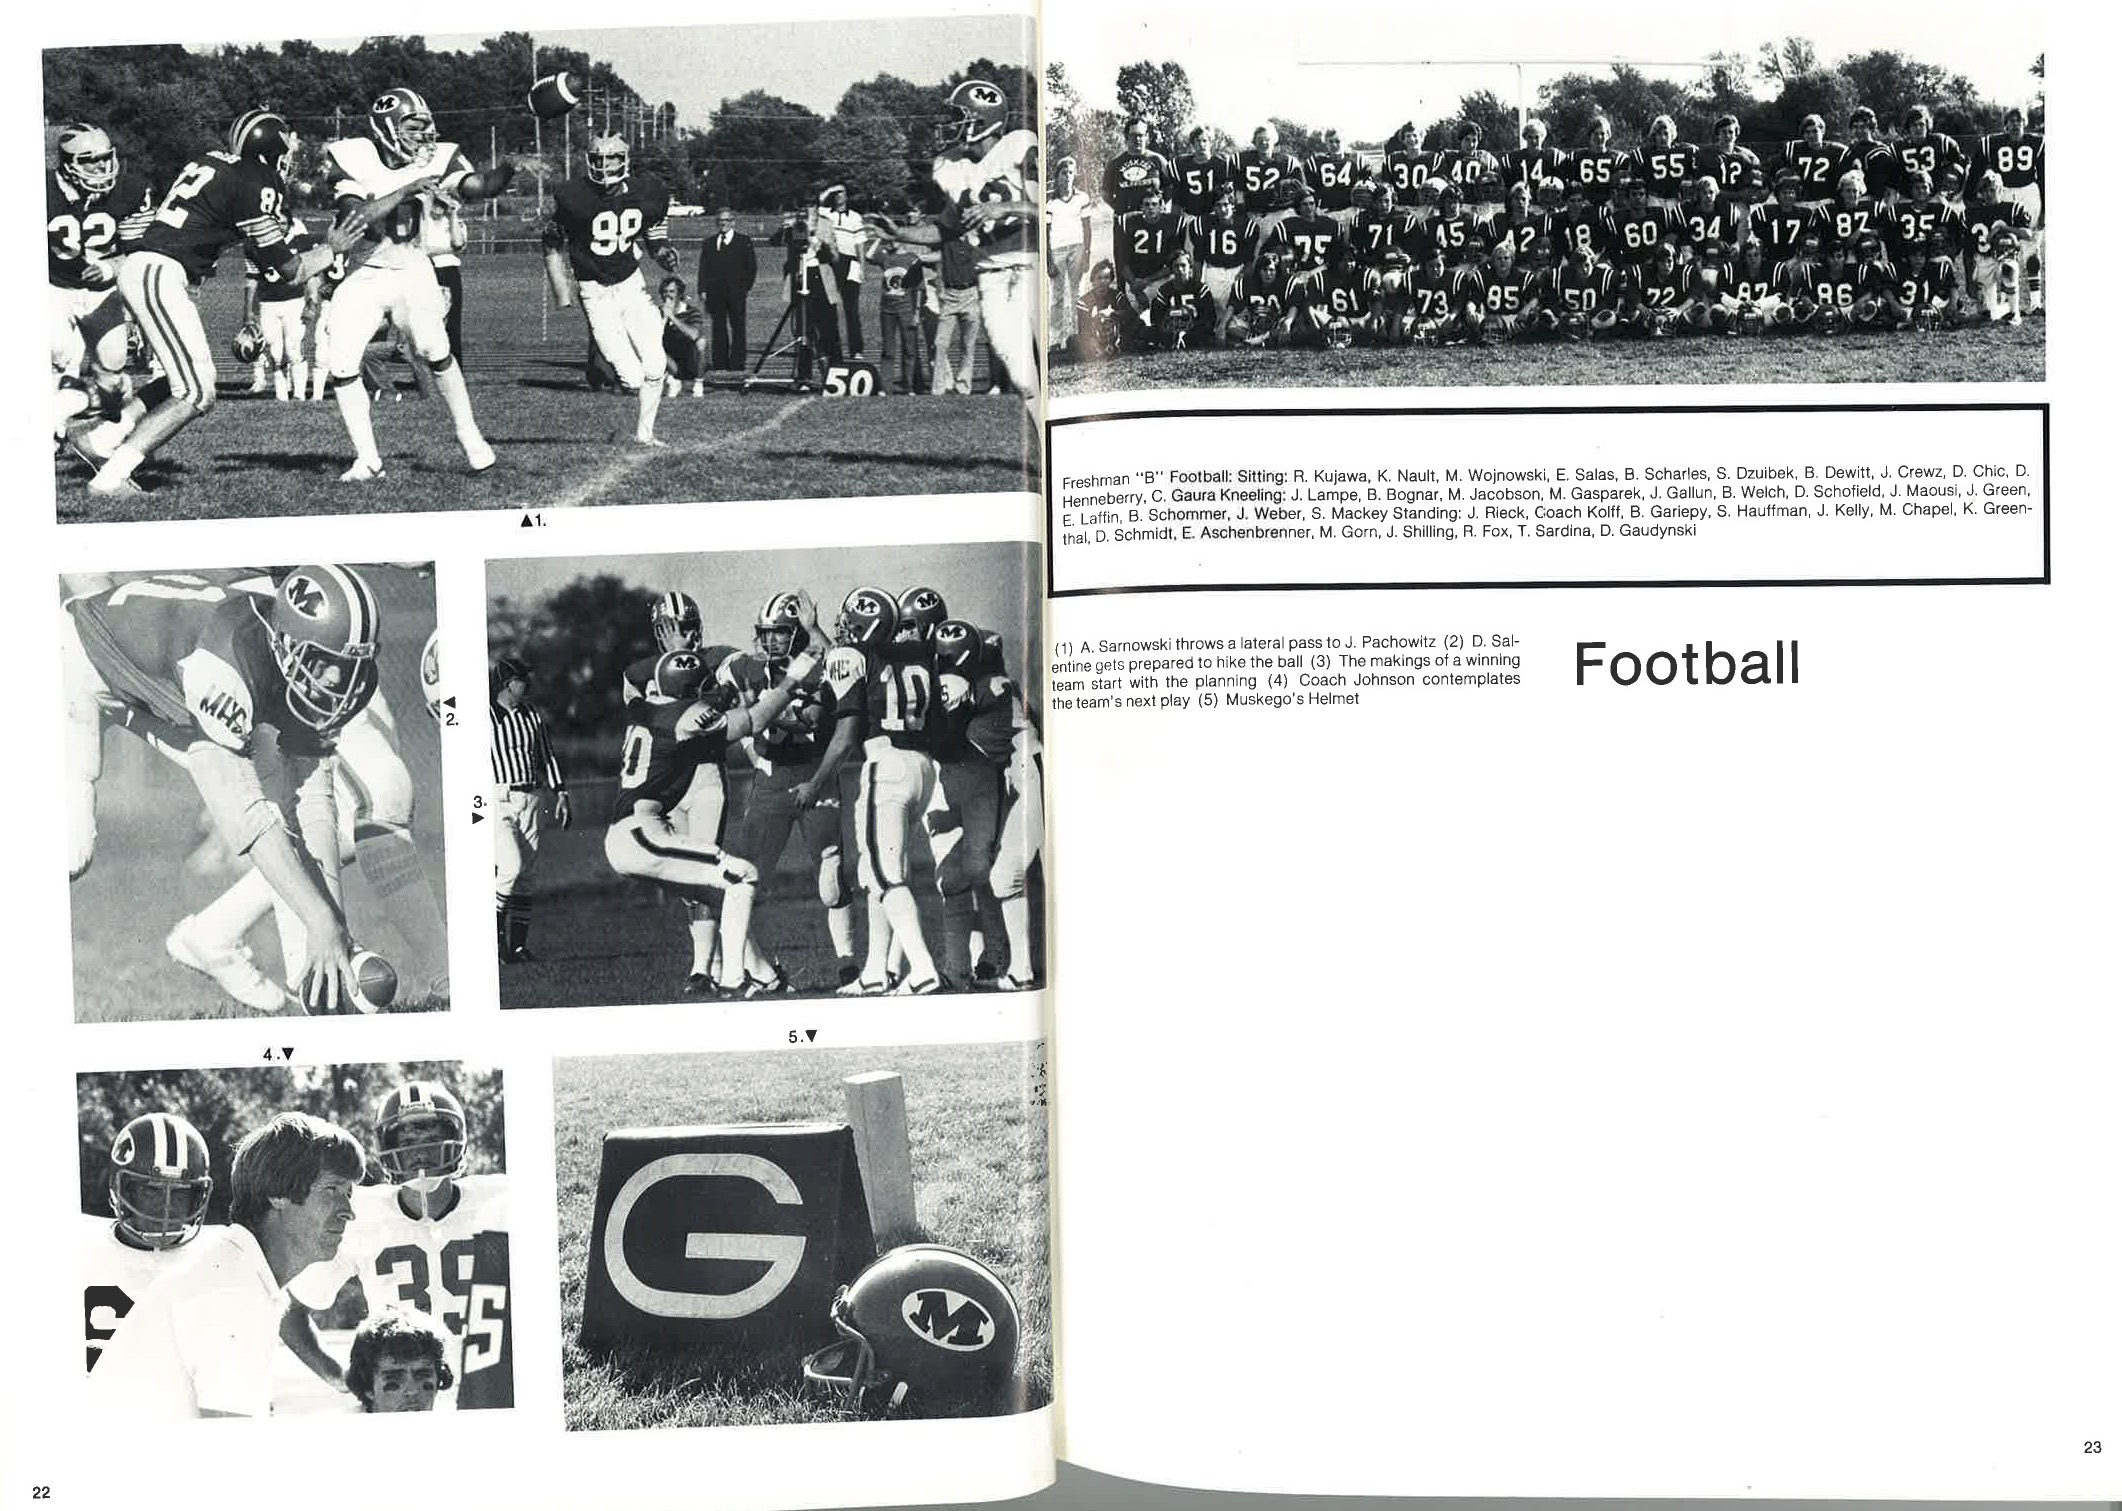 1981_Yearbook_22.jpg